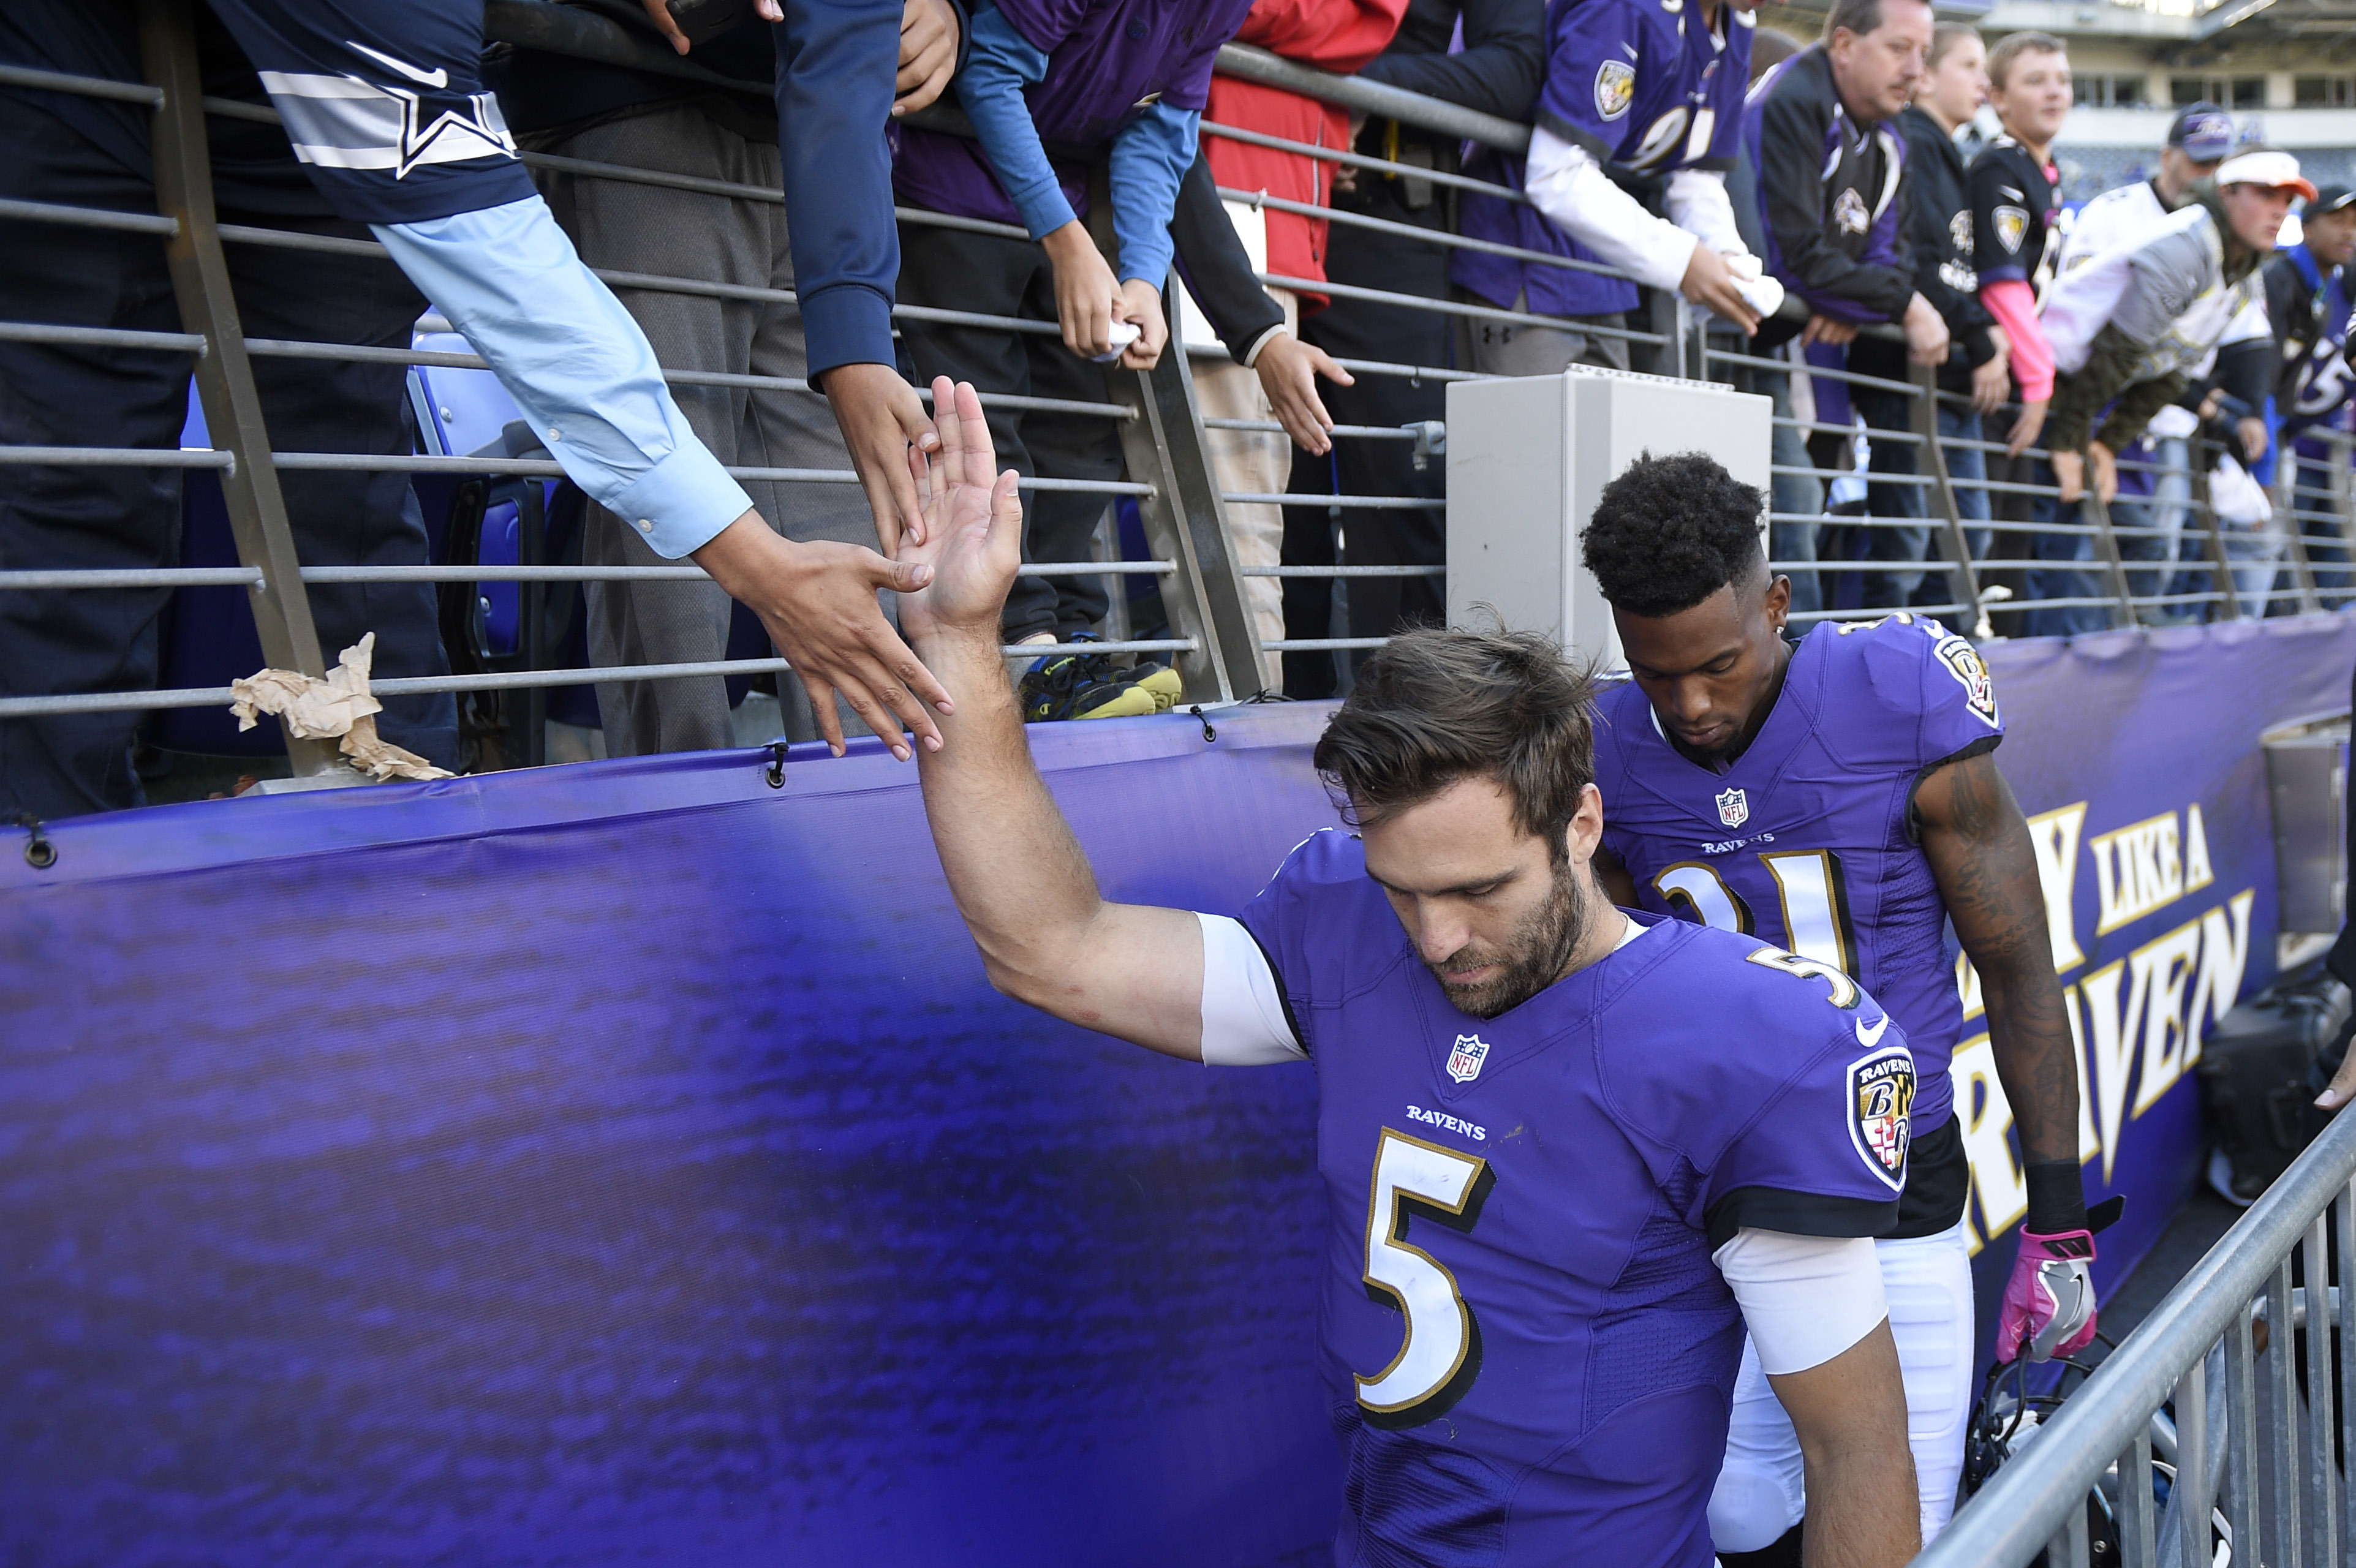 Baltimore Ravens' Joe Flacco greets fans as he walks to the locker room after losing an NFL football game against the Washington Redskins, Sunday, Oct. 9, 2016, in Baltimore. Washington won 16-10. (AP Photo/Nick Wass)